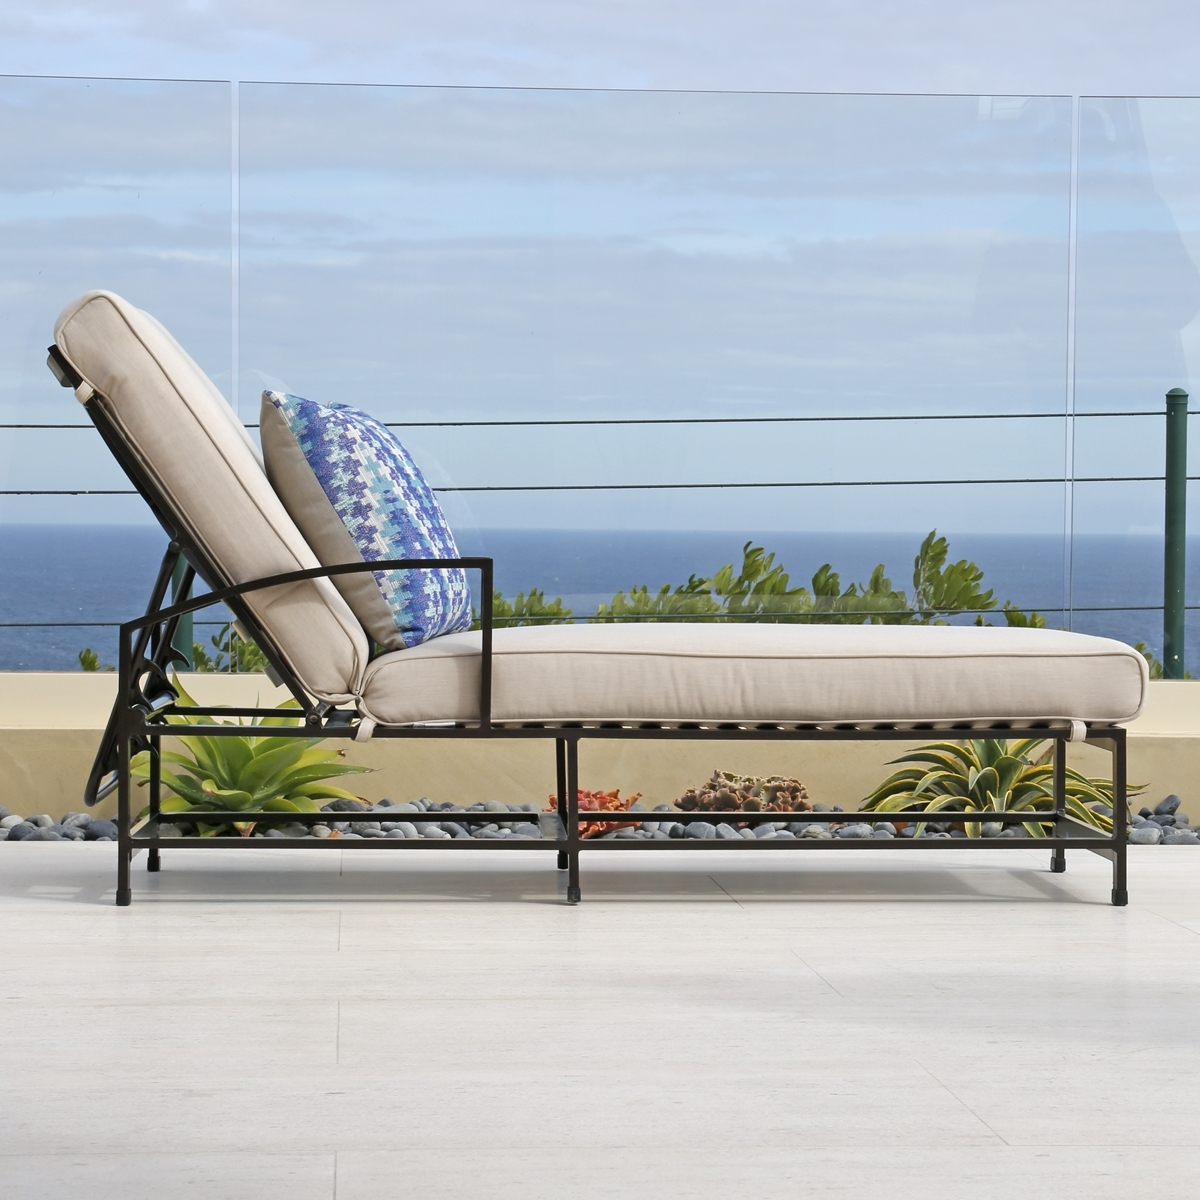 Sunbrella Chaise Cushions With Regard To Newest Chaise Cushion Replacement (View 13 of 15)